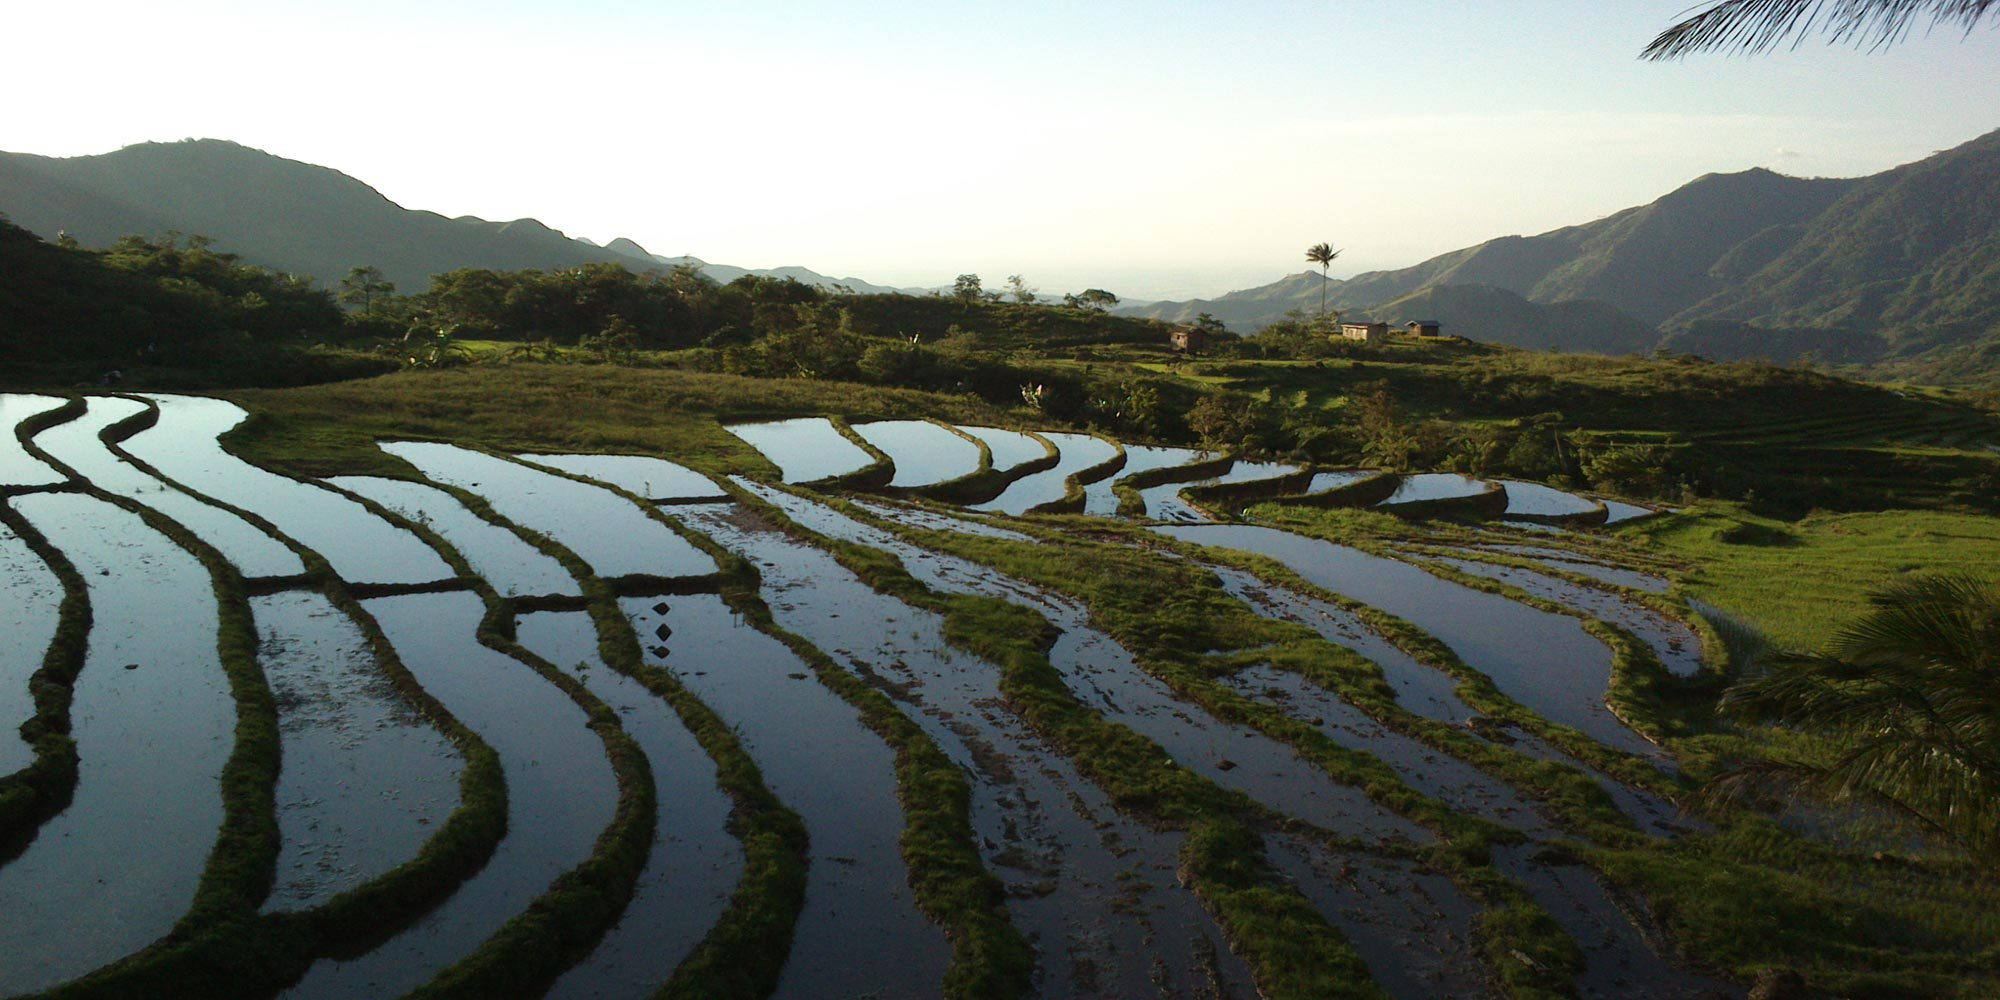 Rice terrace in Negros Island during our bike adventure tours